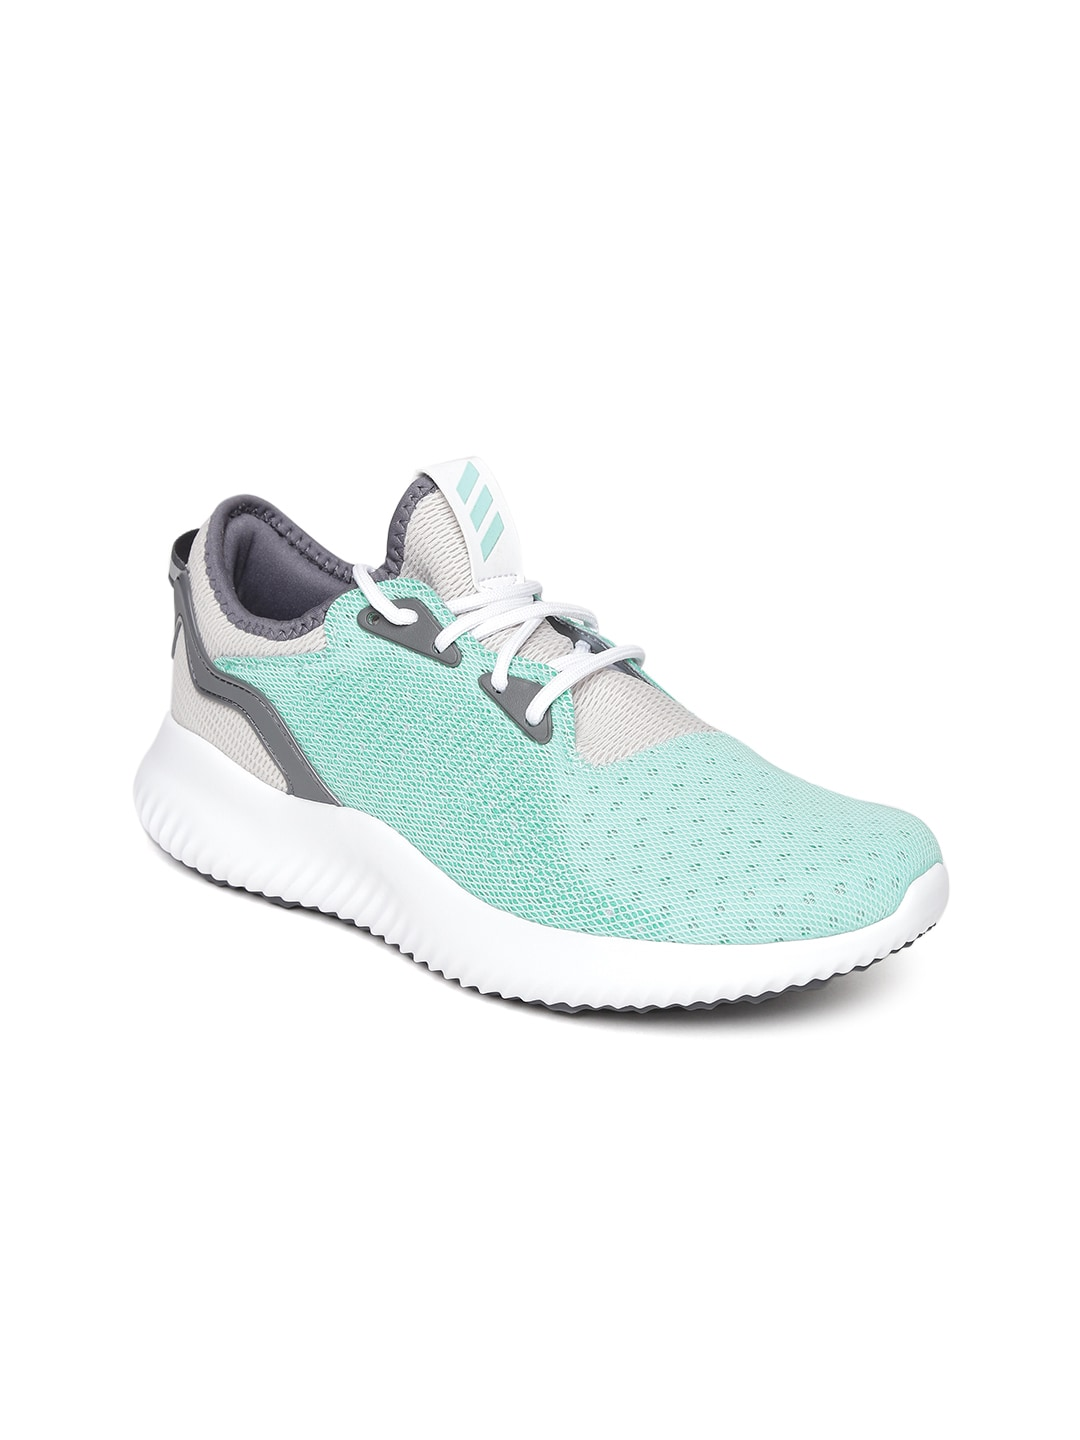 Buy Nike Women Beige Air Max Sequent 2 Running Shoes Sports Adidas Alphabounce Enginereed Amp039mesh Grey Black